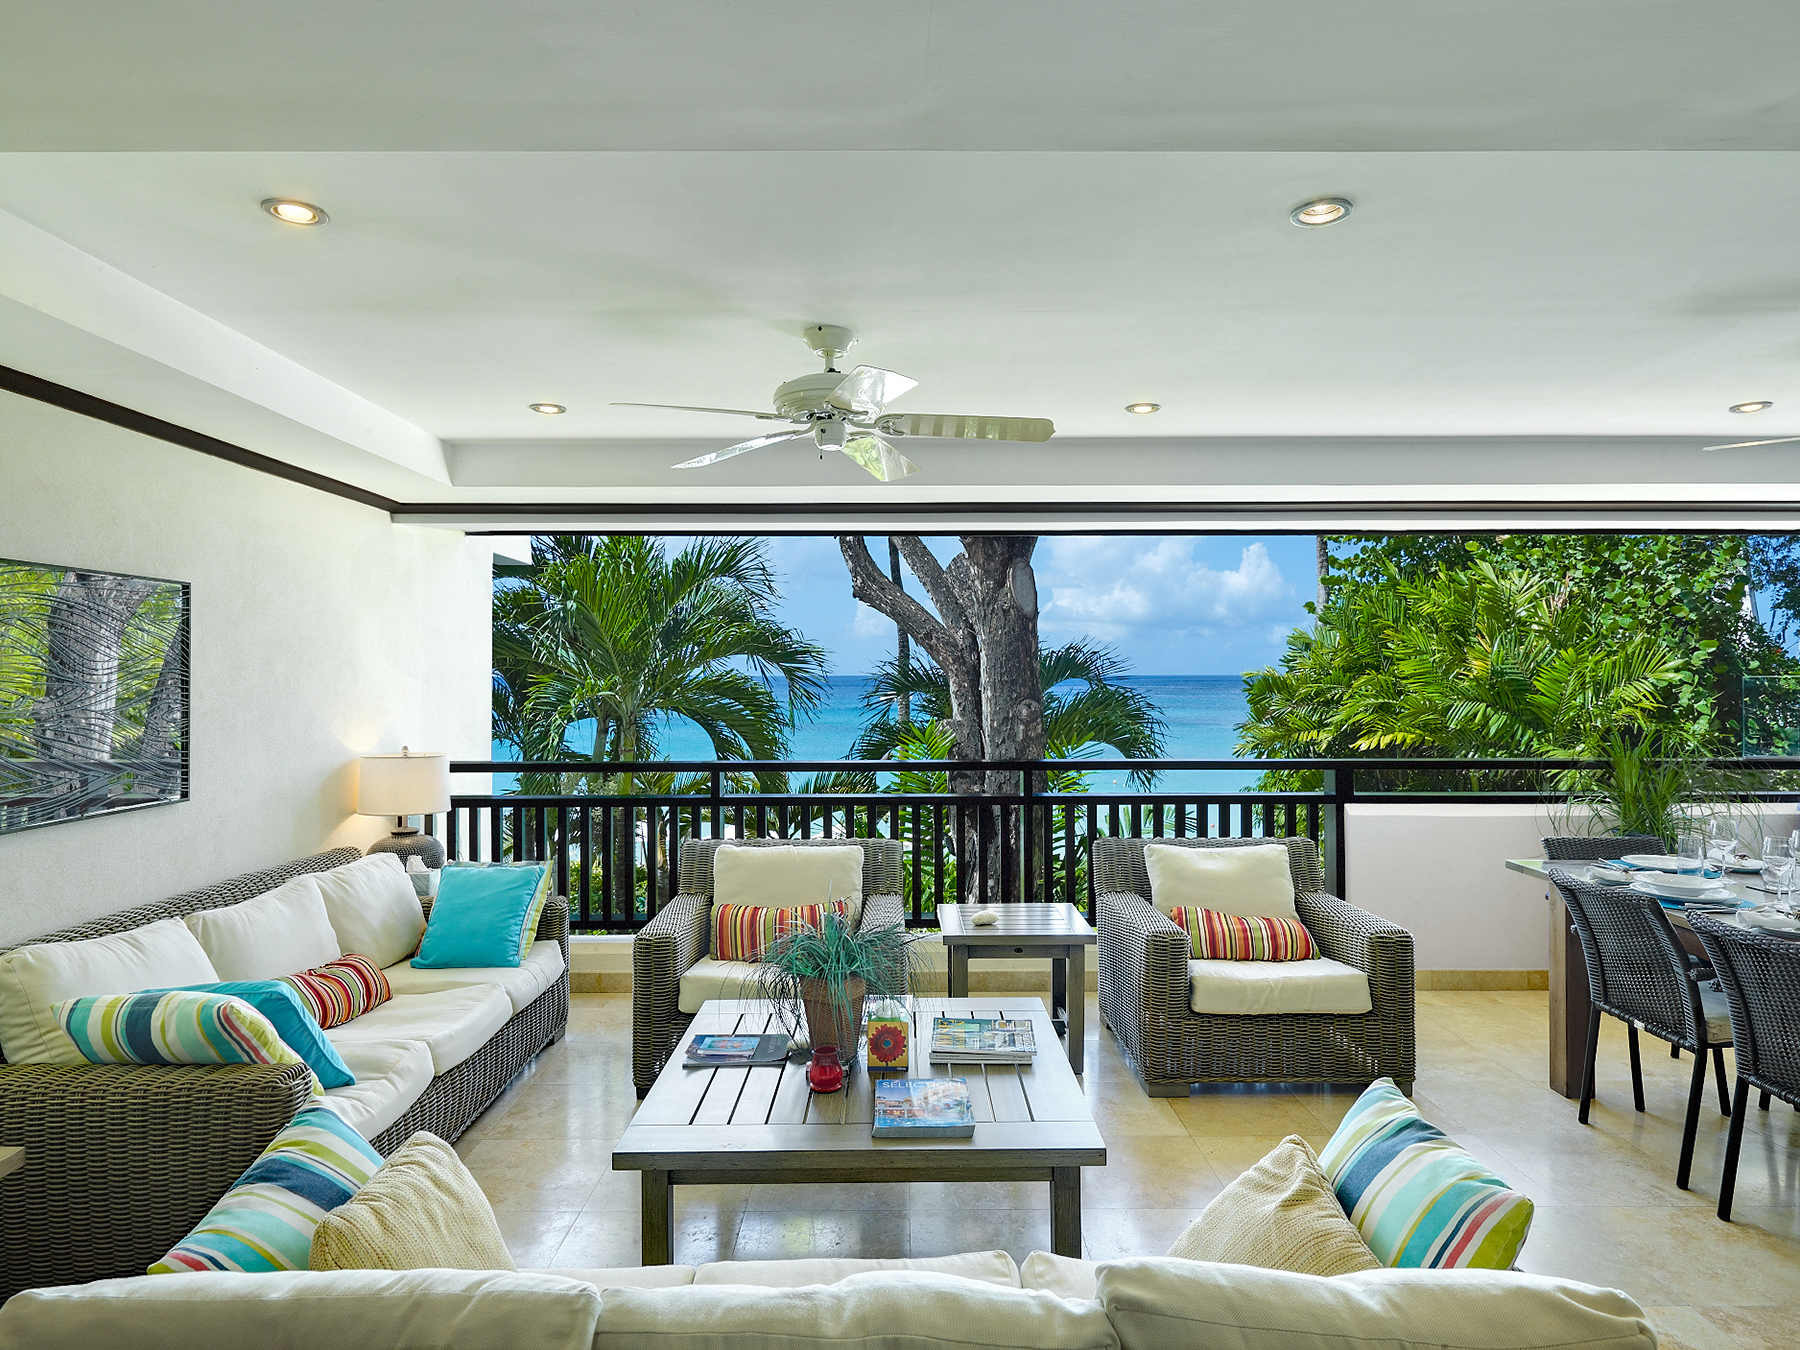 Property For Sale at Coral Cove 6, The Ivy